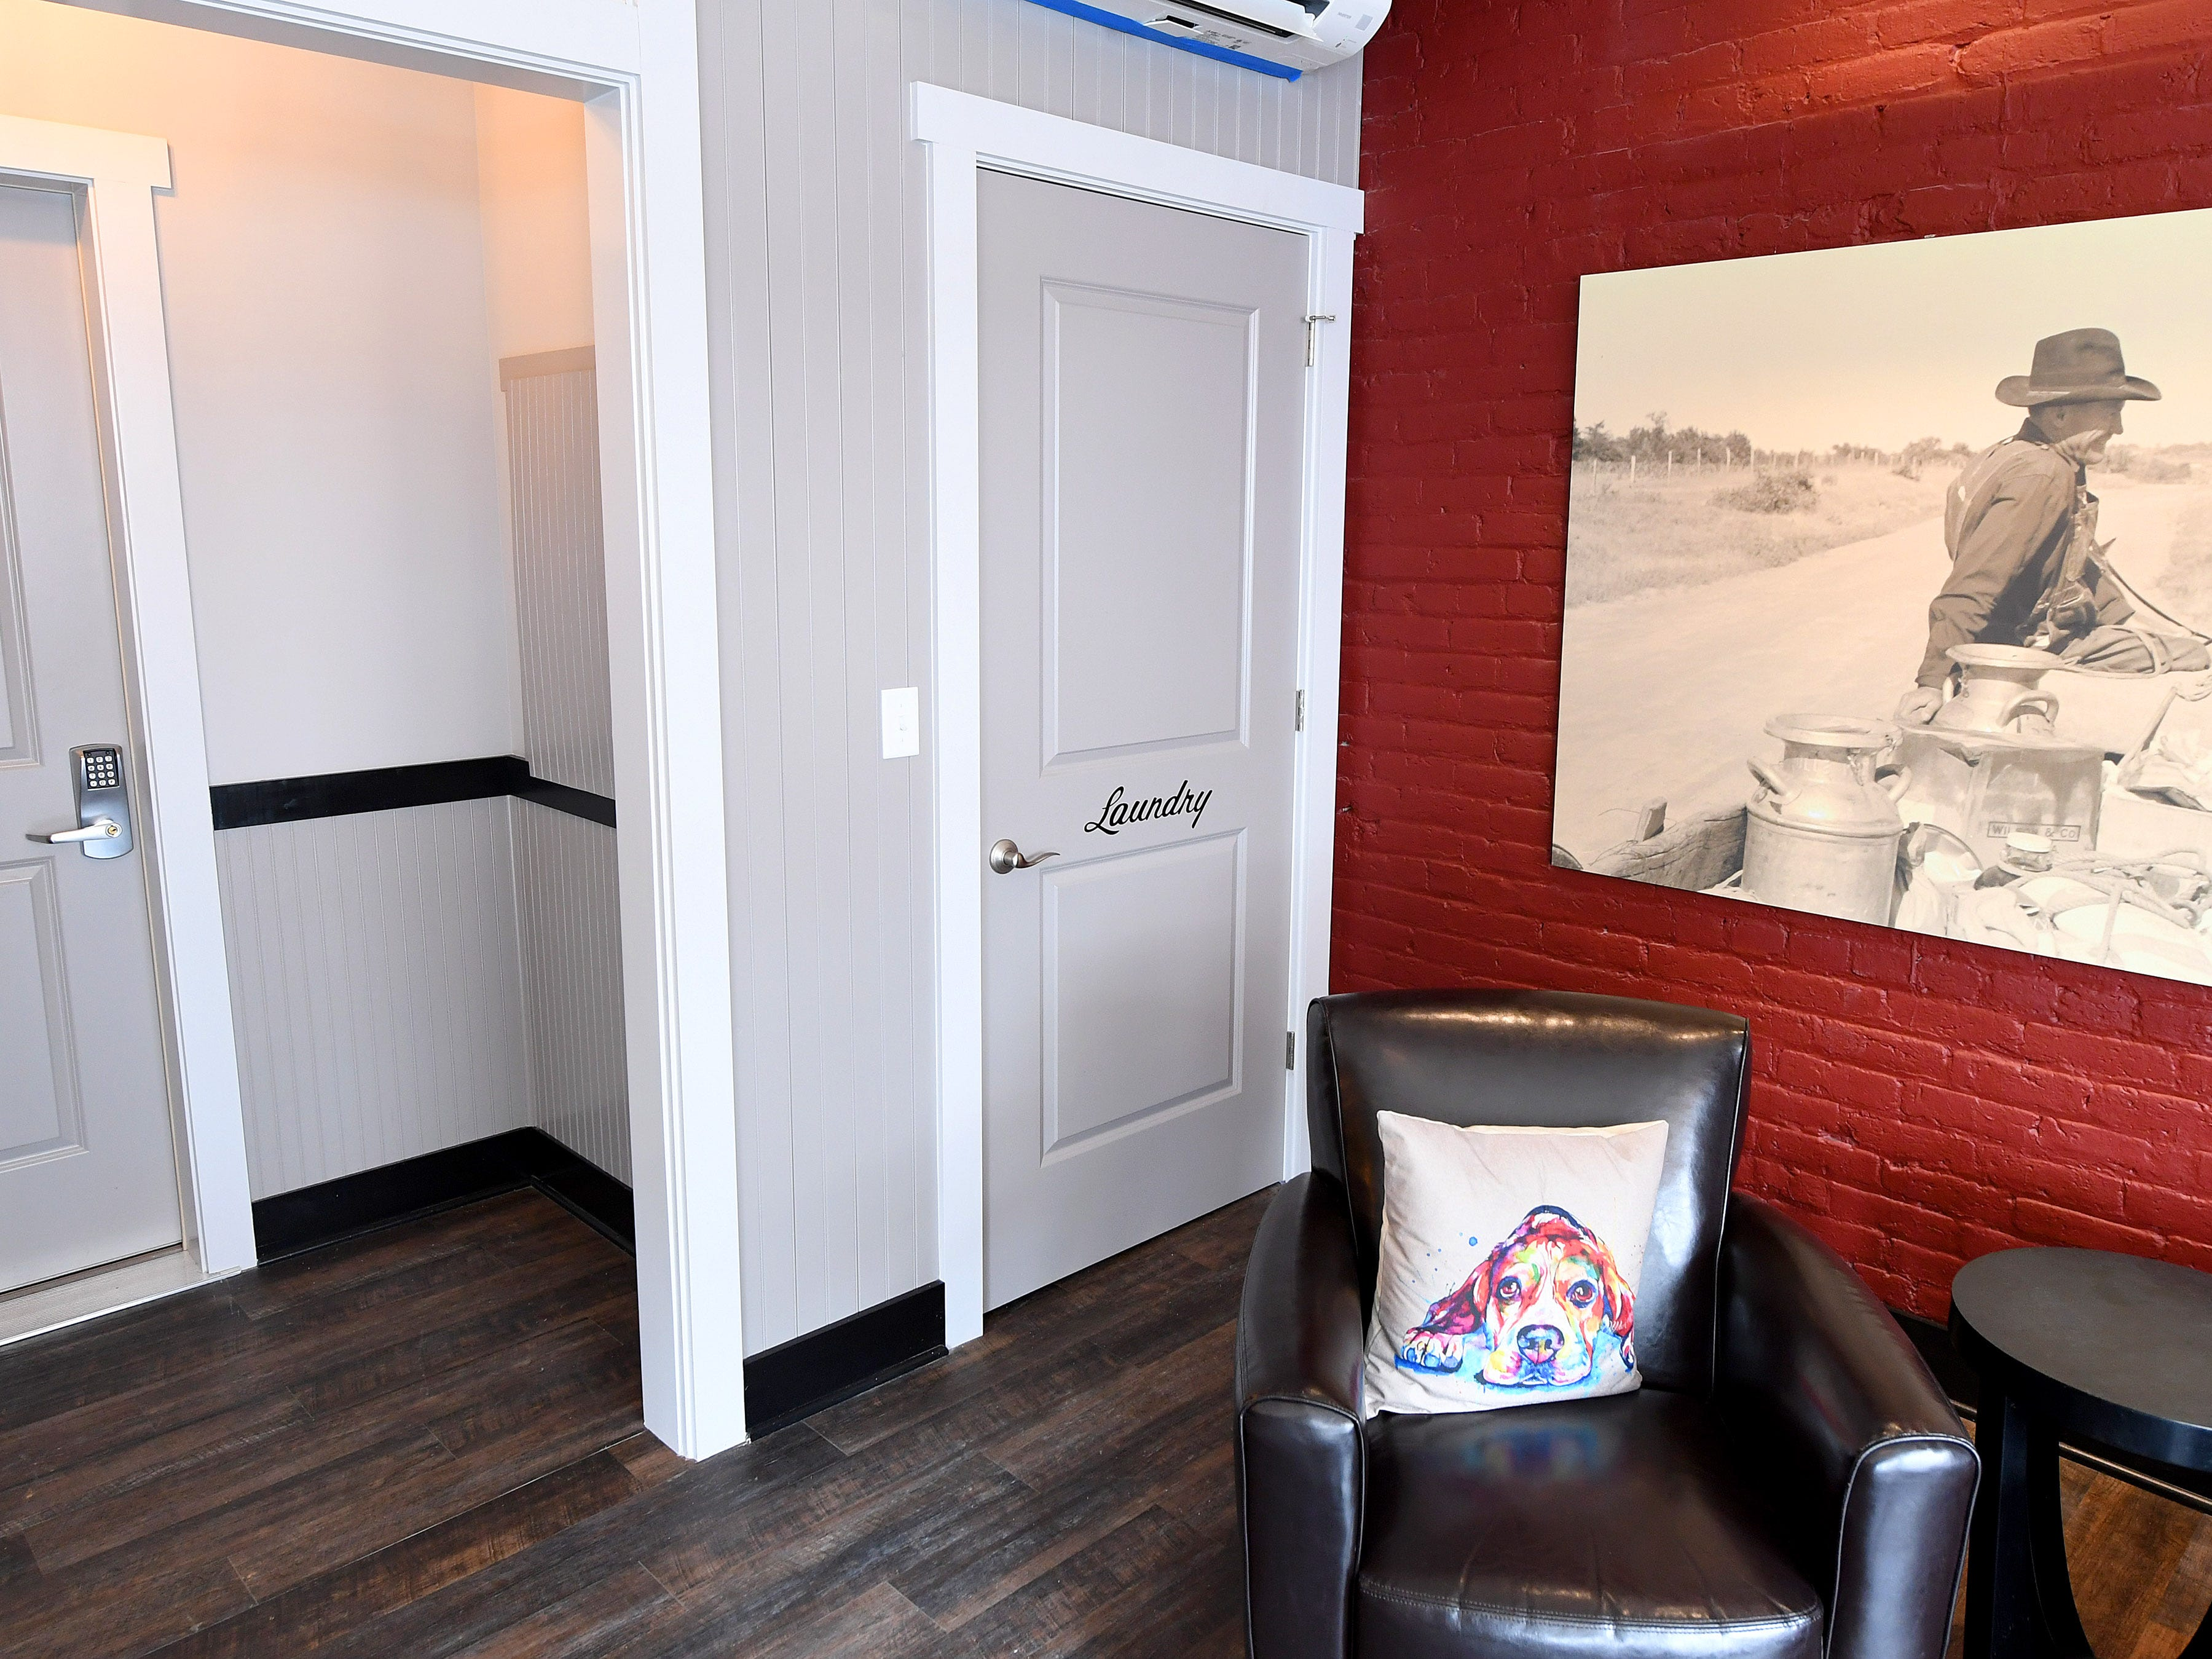 Gibson's Warehouse has a shared laundry for their guests. Gibson's is a boutique hotel located on Middlebrook Avenue across from the train station in Staunton.